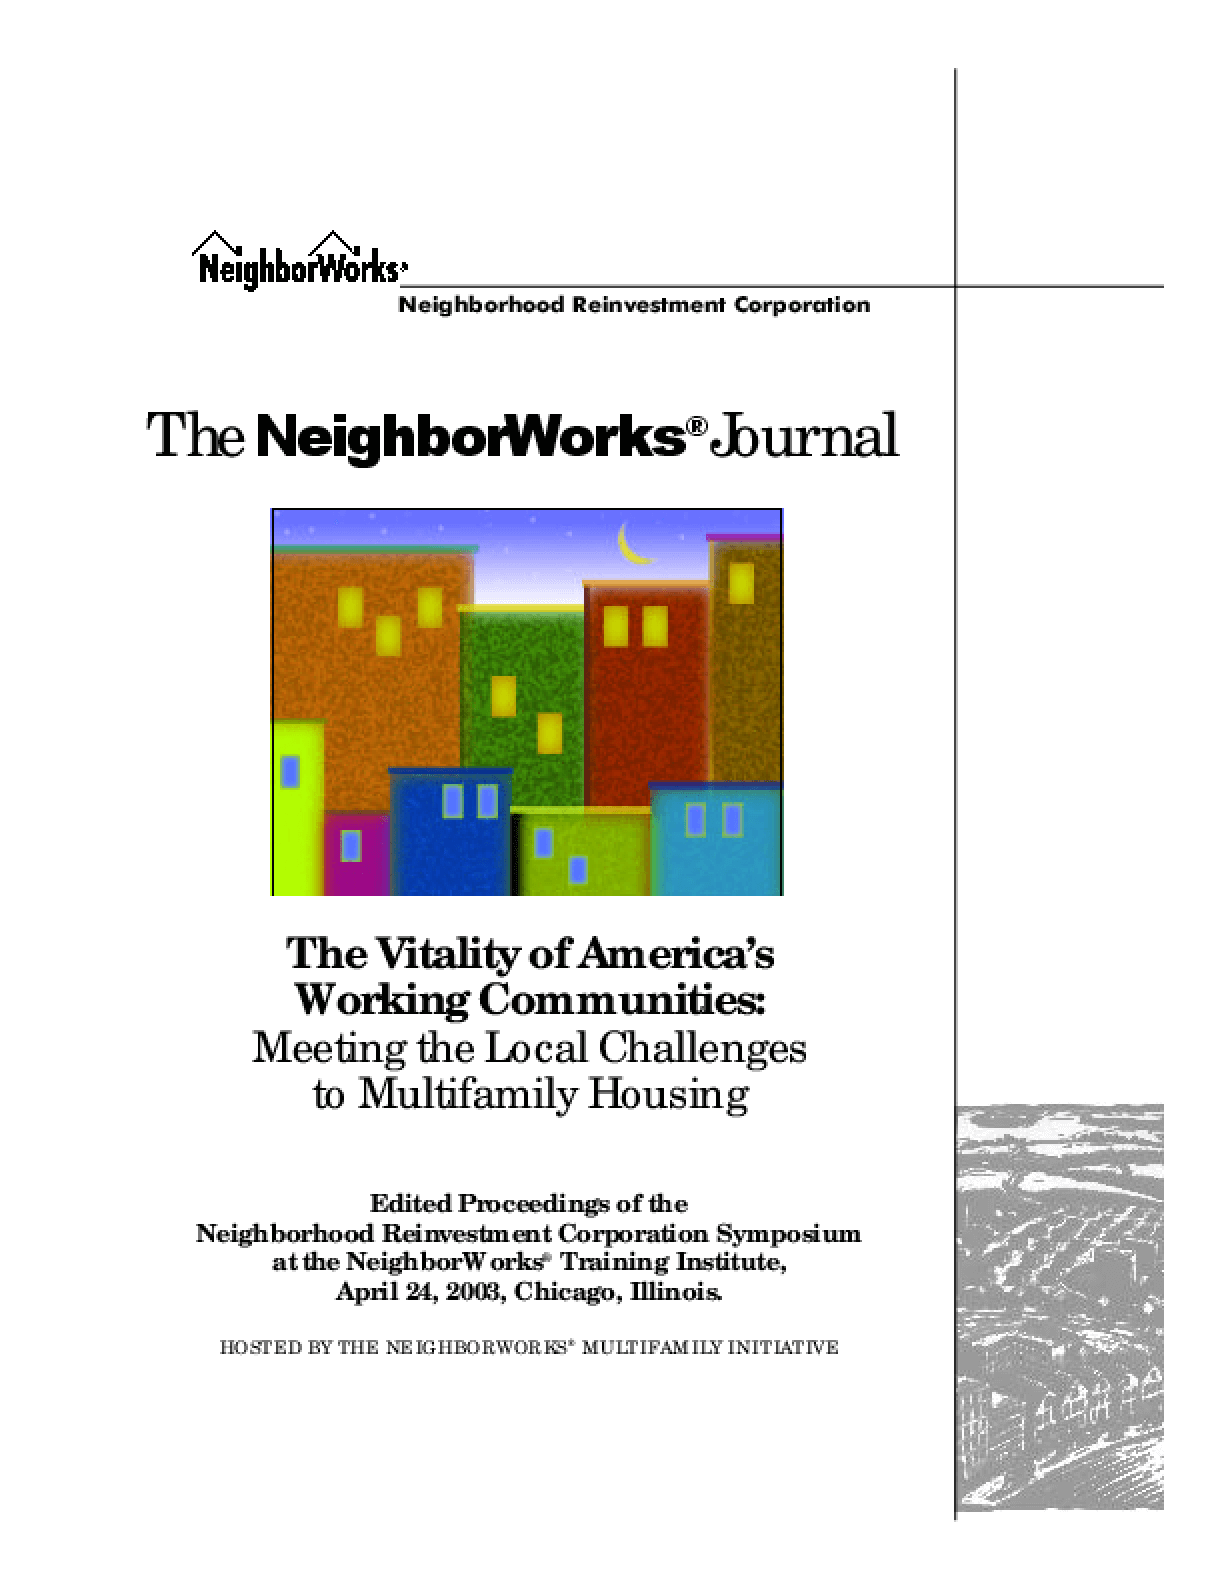 The Vitality of America's Working Neighborhoods: Meeting the Local Challenges to Multifamily Housing